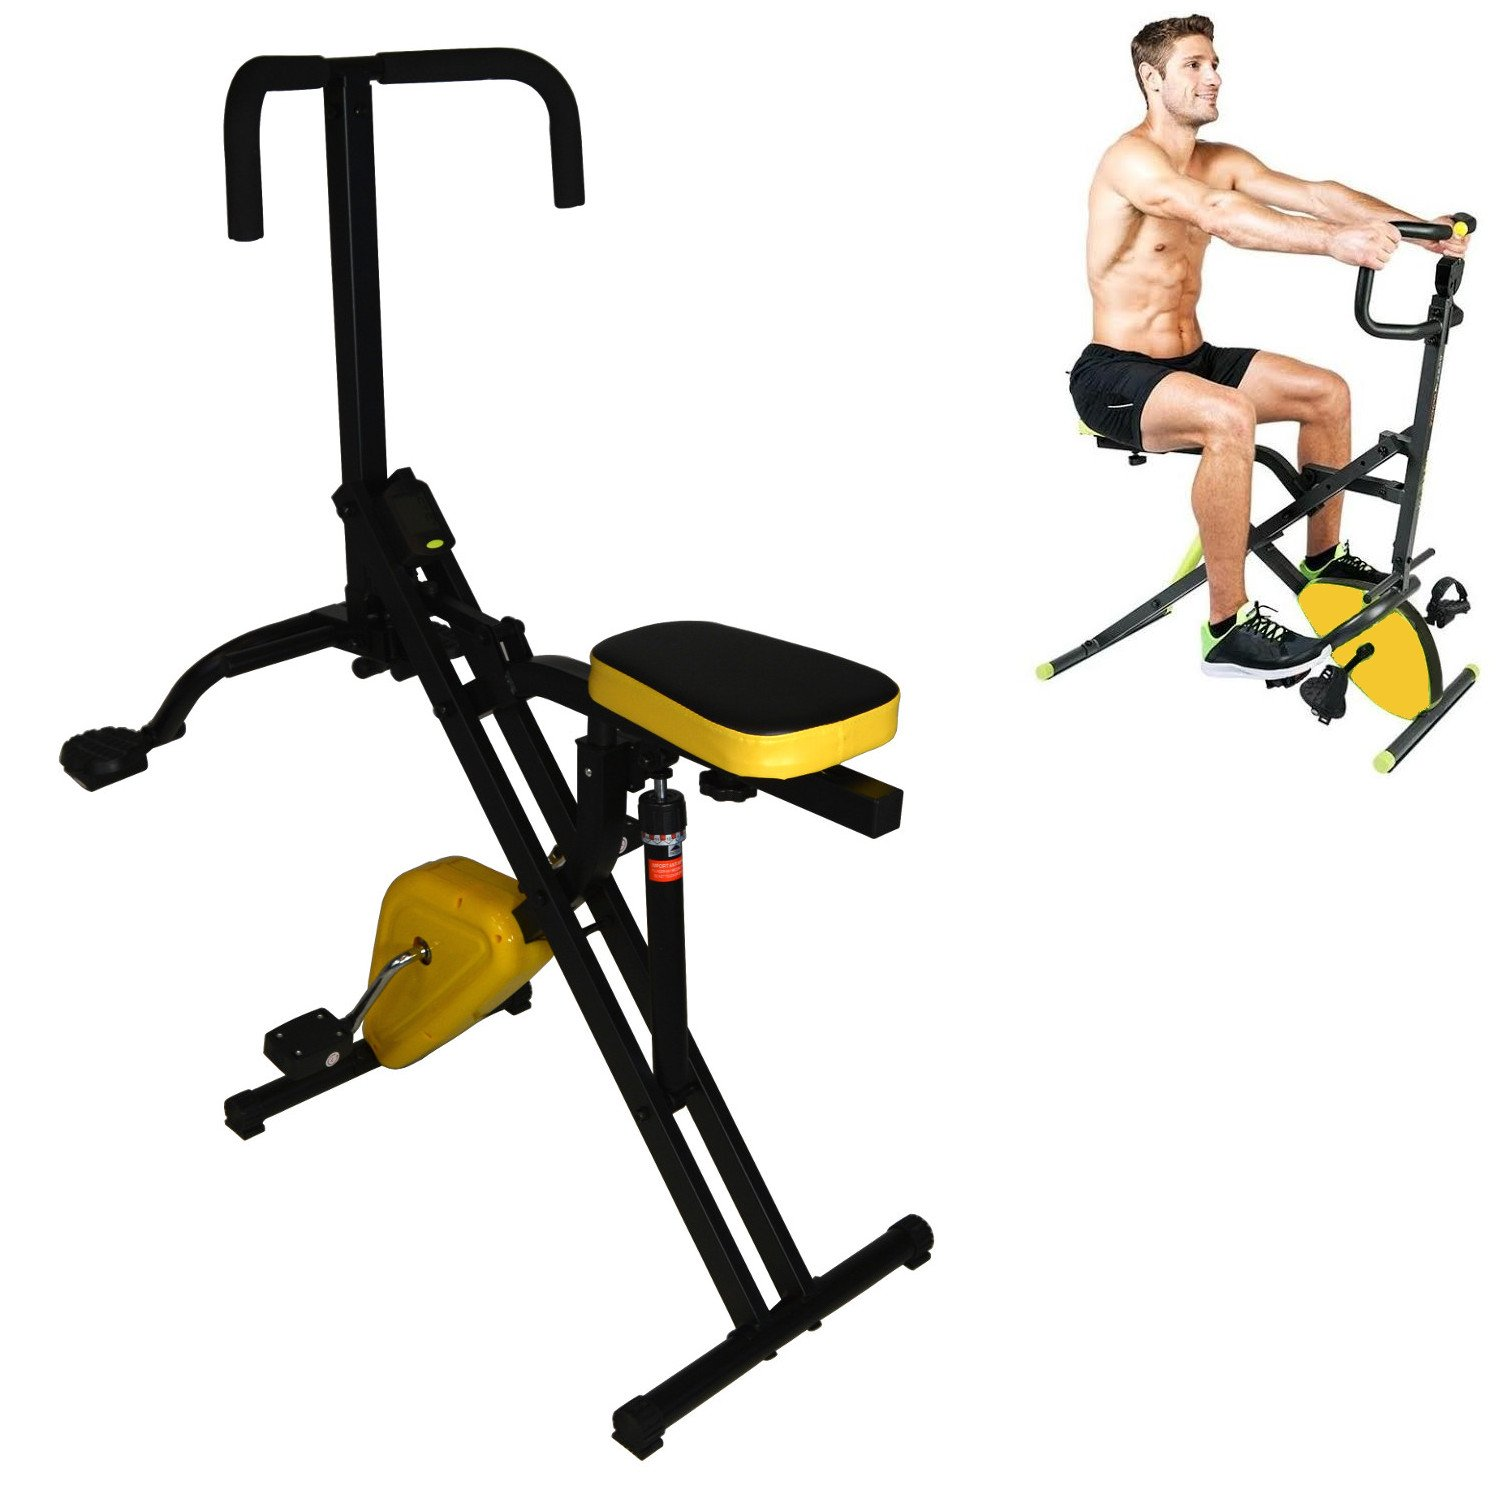 Total Crunch 2 in 1 Horse Rider with Hydraulic Resistance and Stationary Exercise Pedal Bike